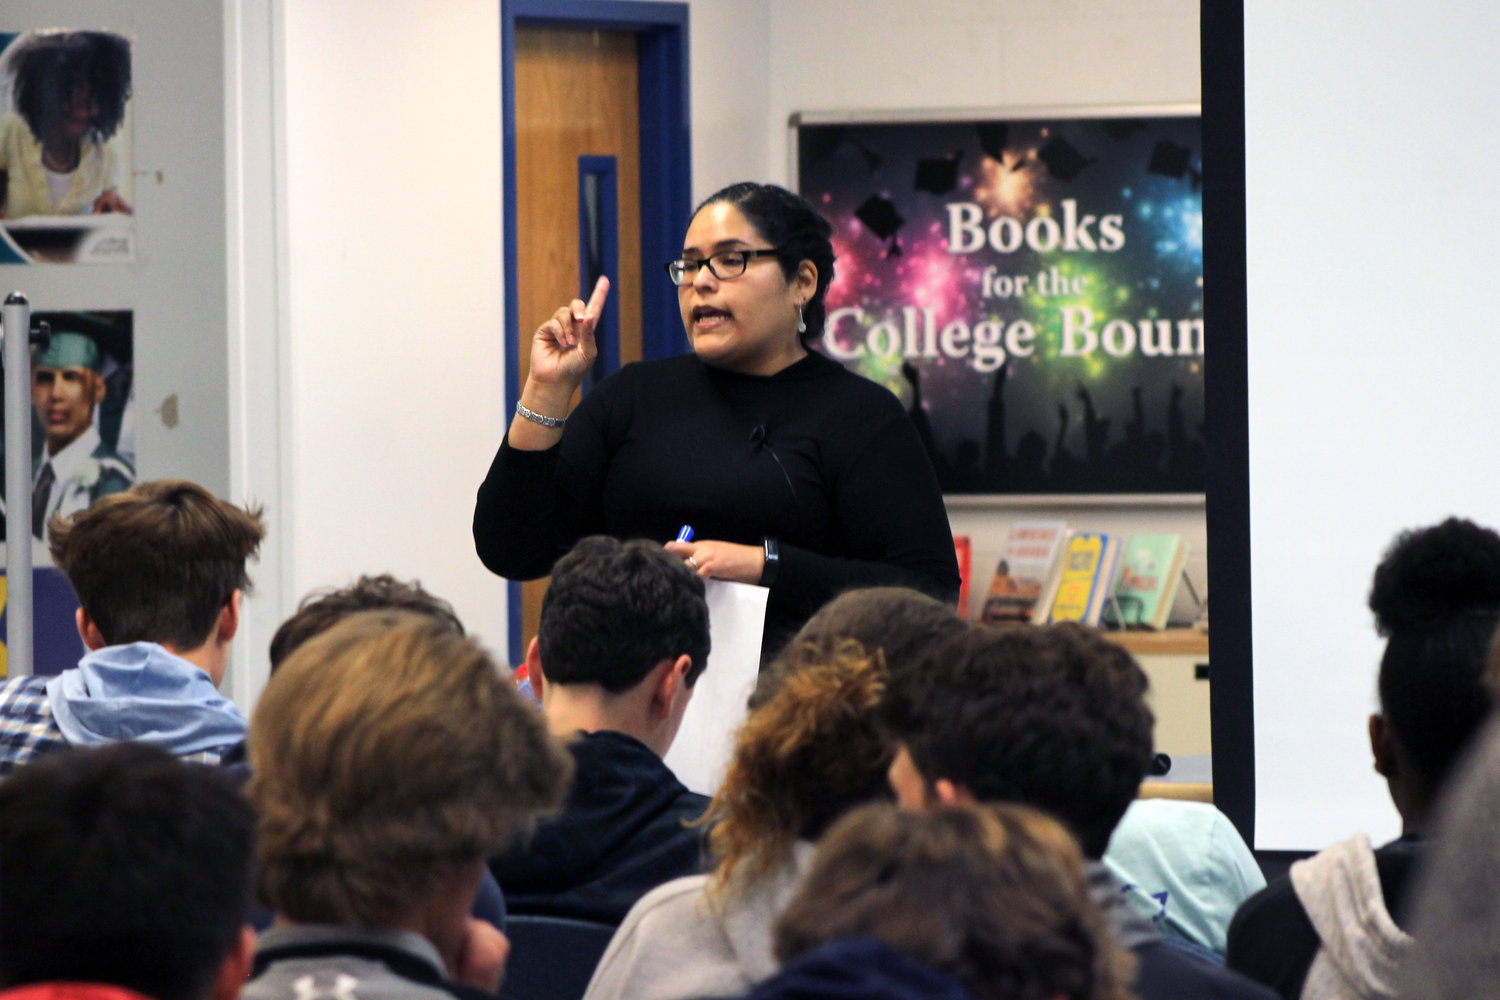 Immigration officer Jules Valencia spoke to students about refugees seeking asylum and the factors that allow them to apply for that status.